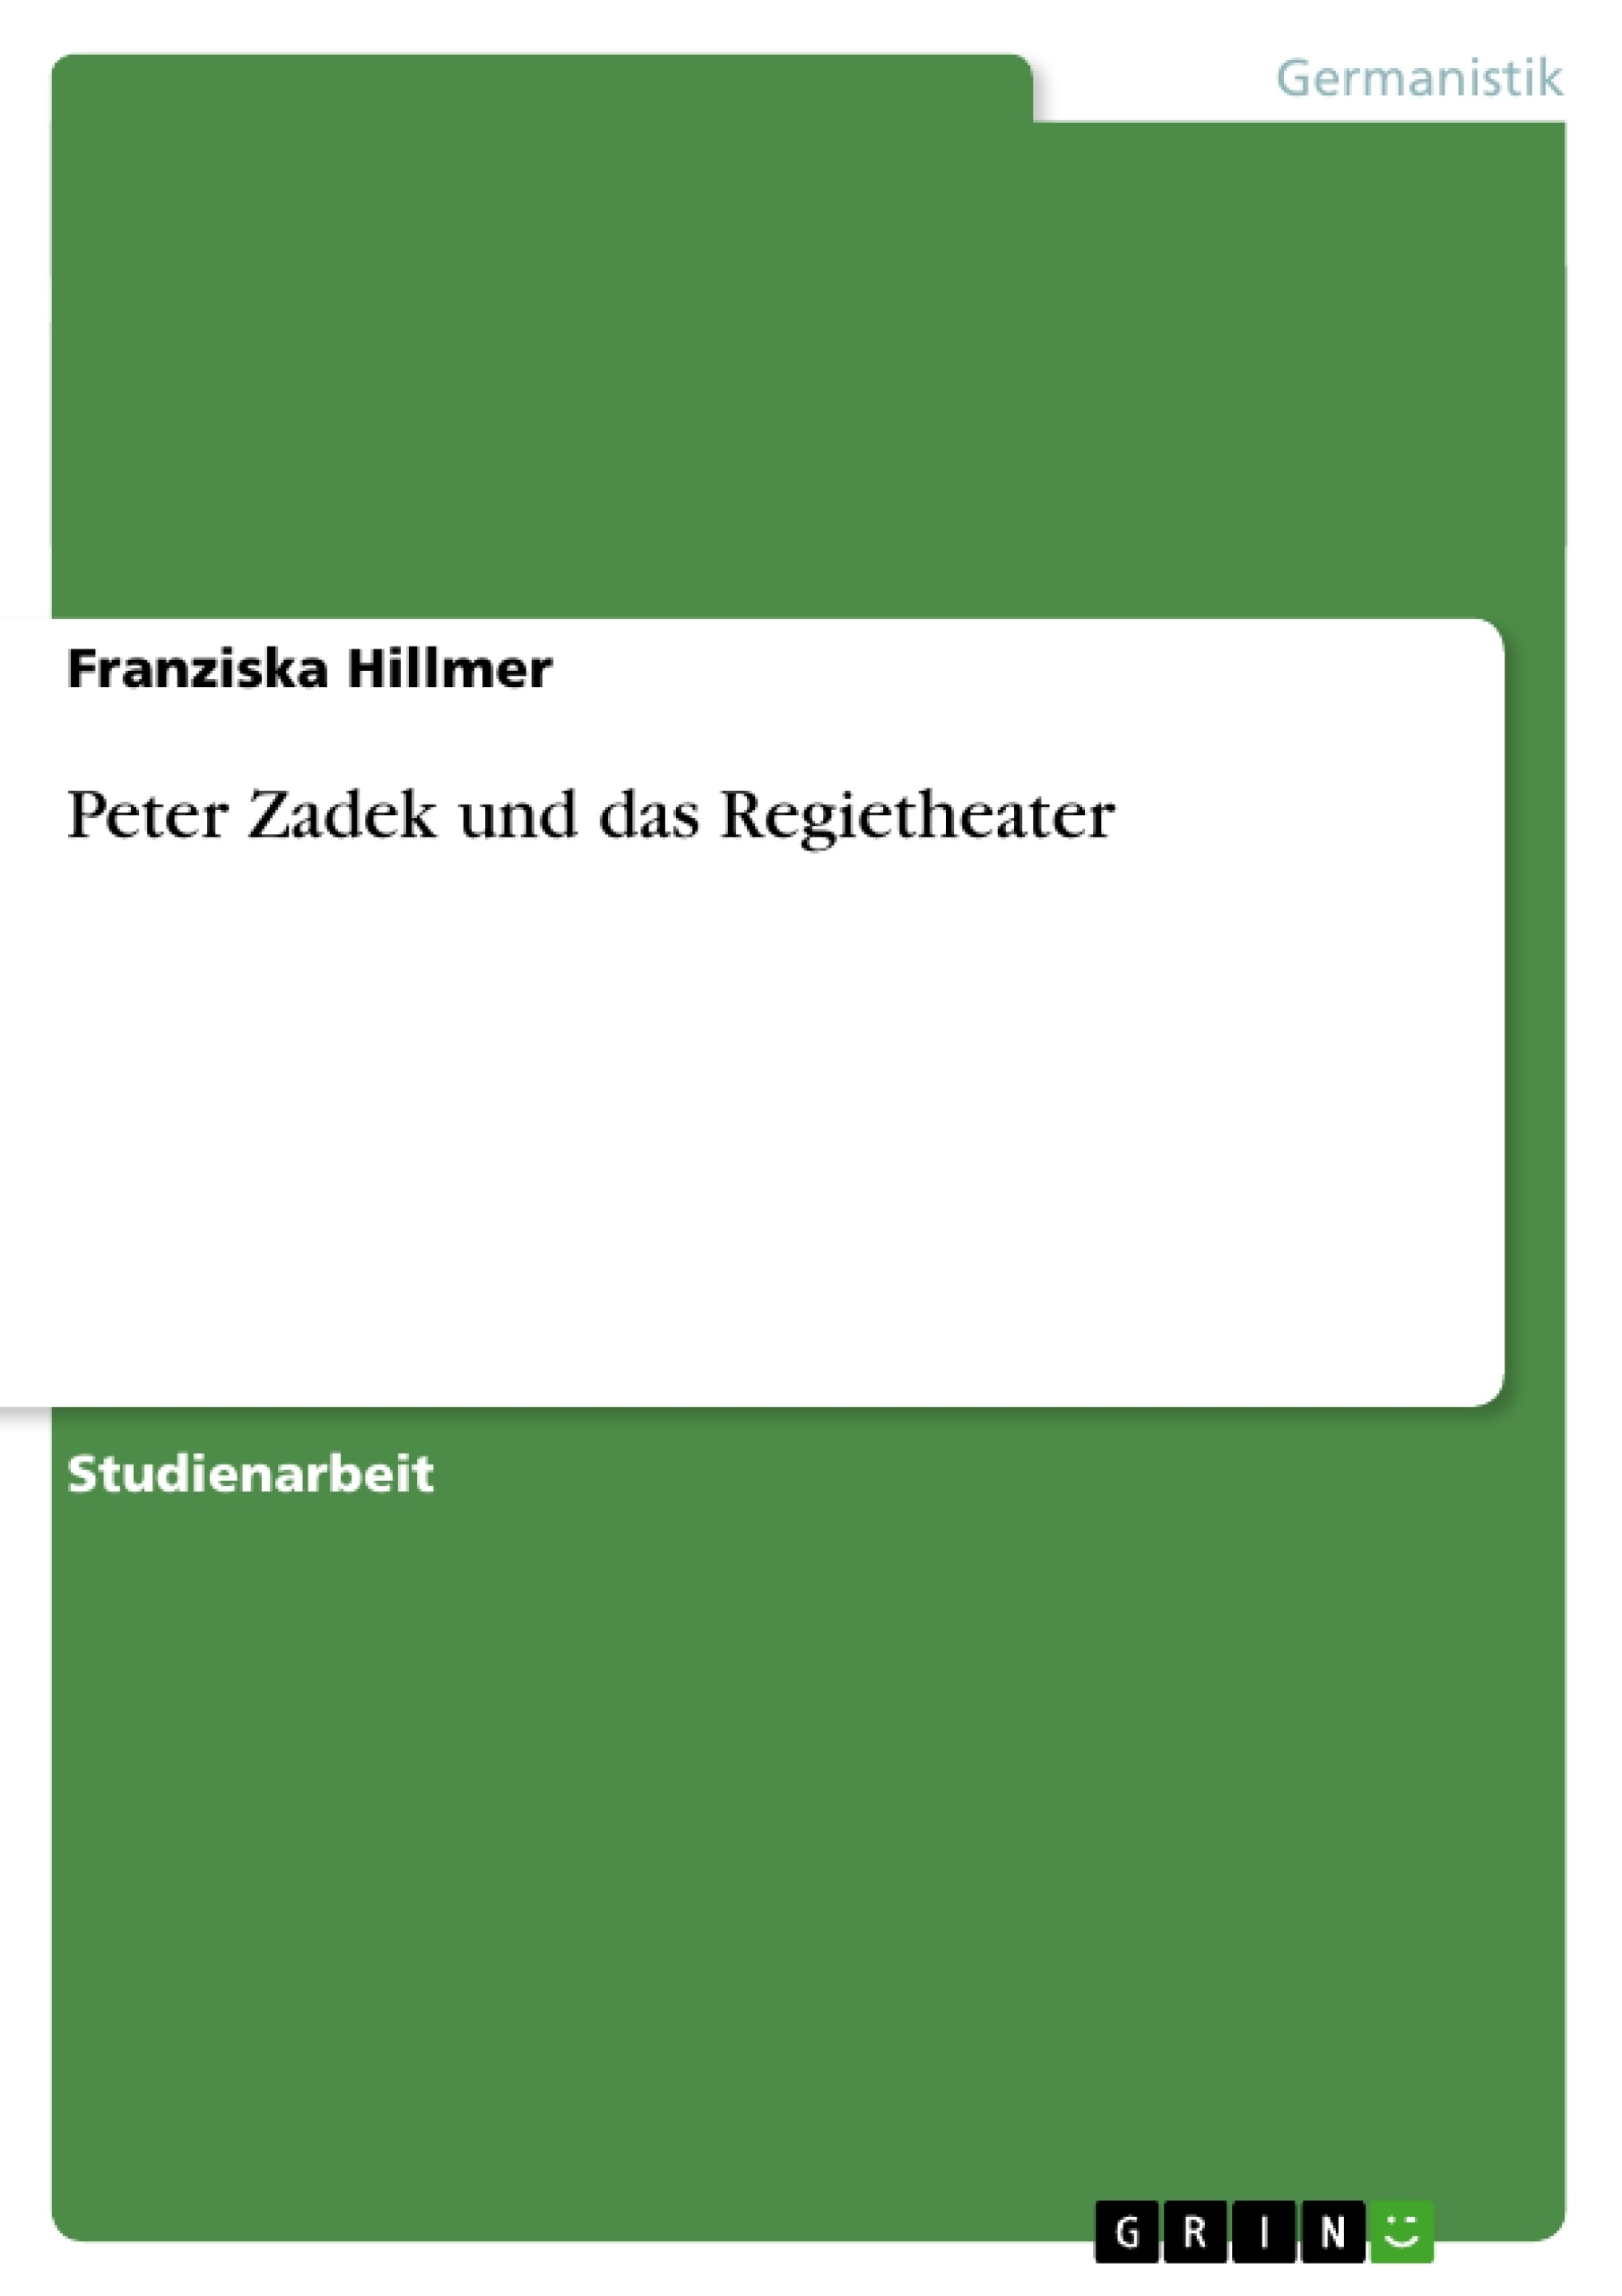 Peter Zadek und das Regietheater (German Edition)